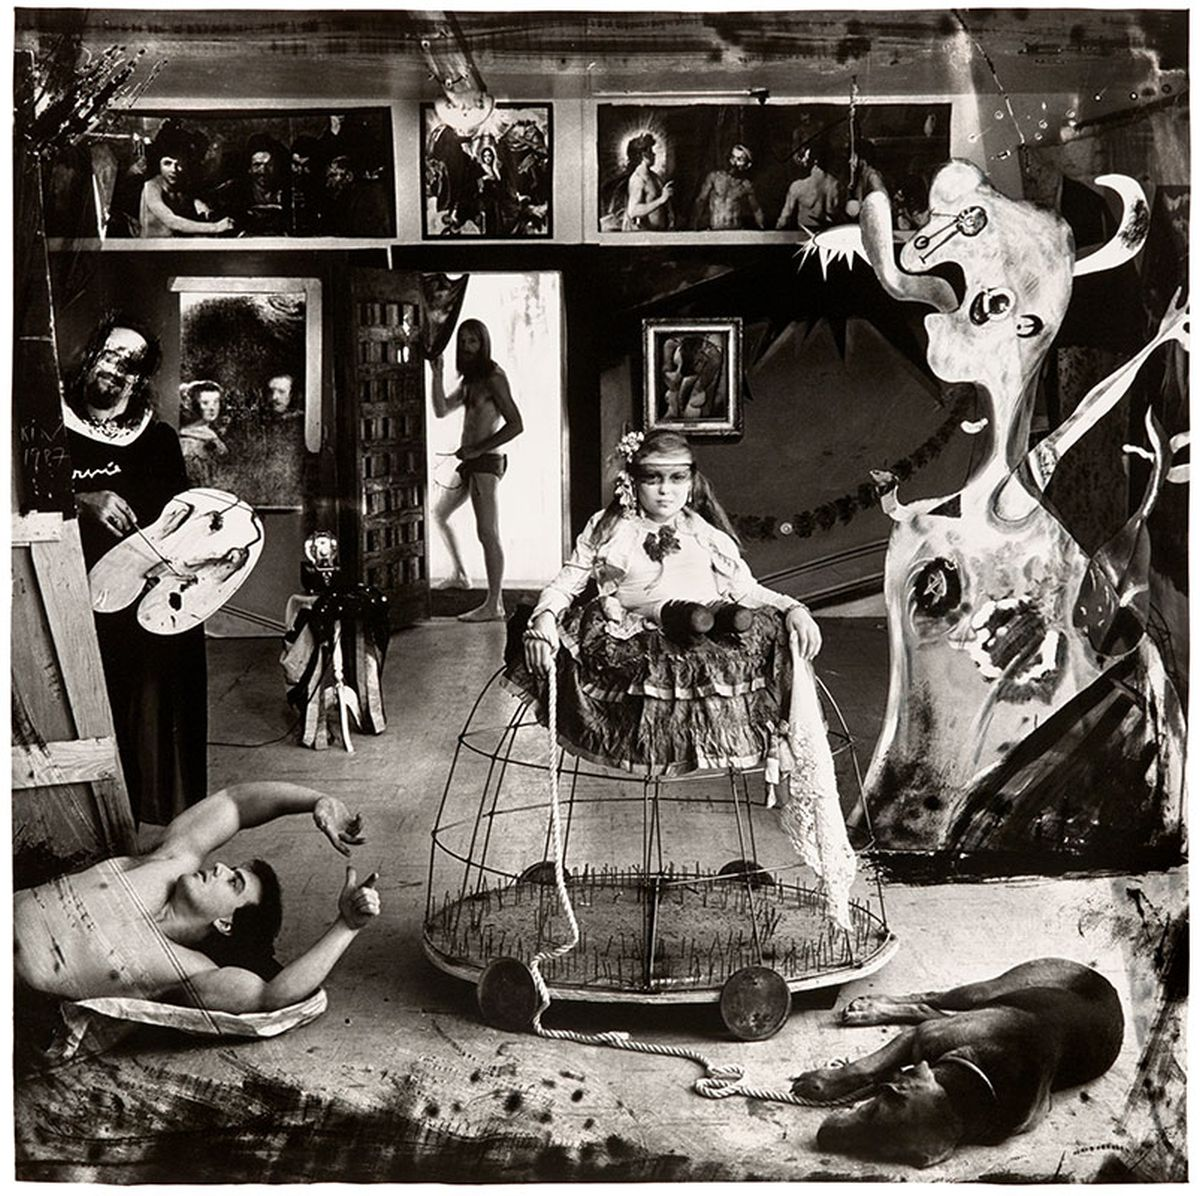 "Joel-Peter Witkin, Las Meninas, New Mexico, 1987  From the Photographic Works series  16 x 20"", 30 x 40"" gelatin silver print Edition of 15 + 3 AP's, 3 + 3 AP's"